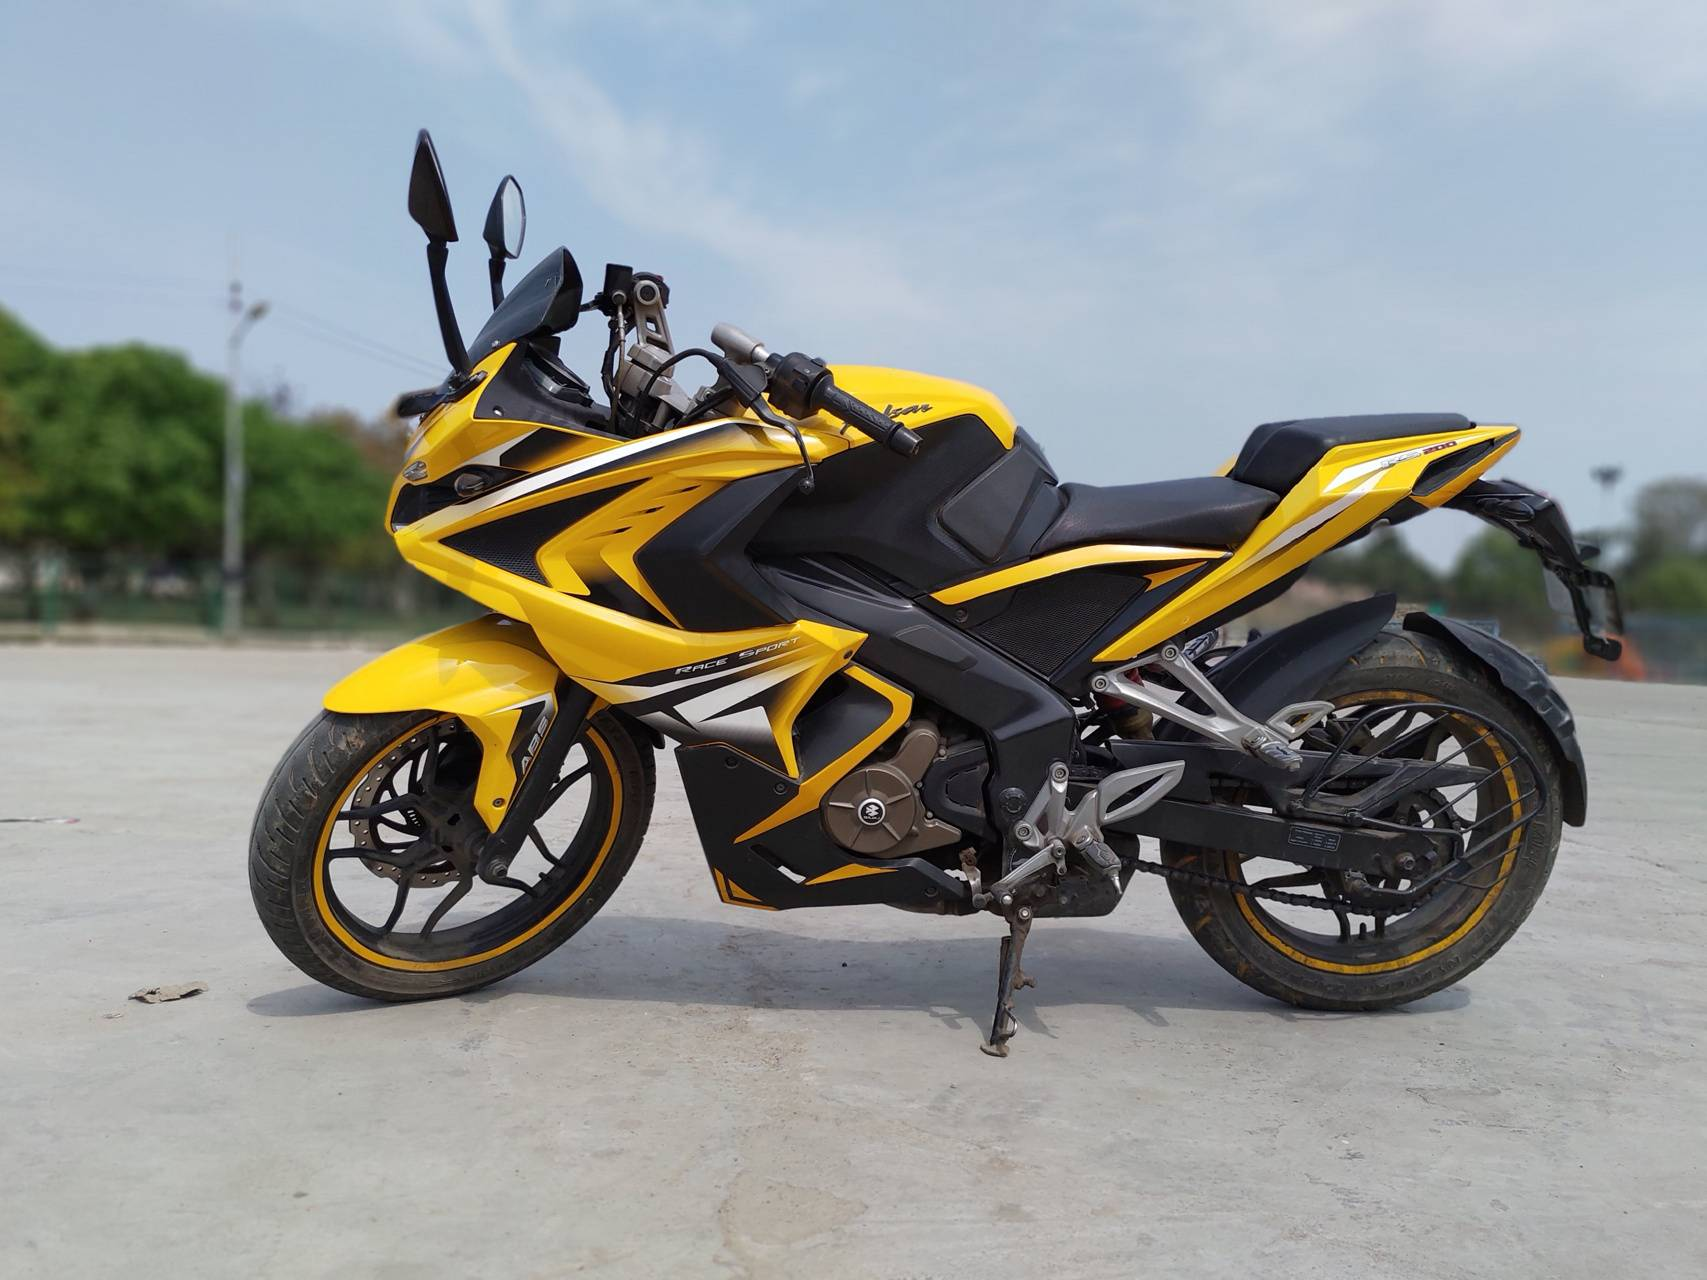 Bajaj Pulsar RS 200 Price, Mileage, Specifications, Colors, Top Speed and Service Schedule